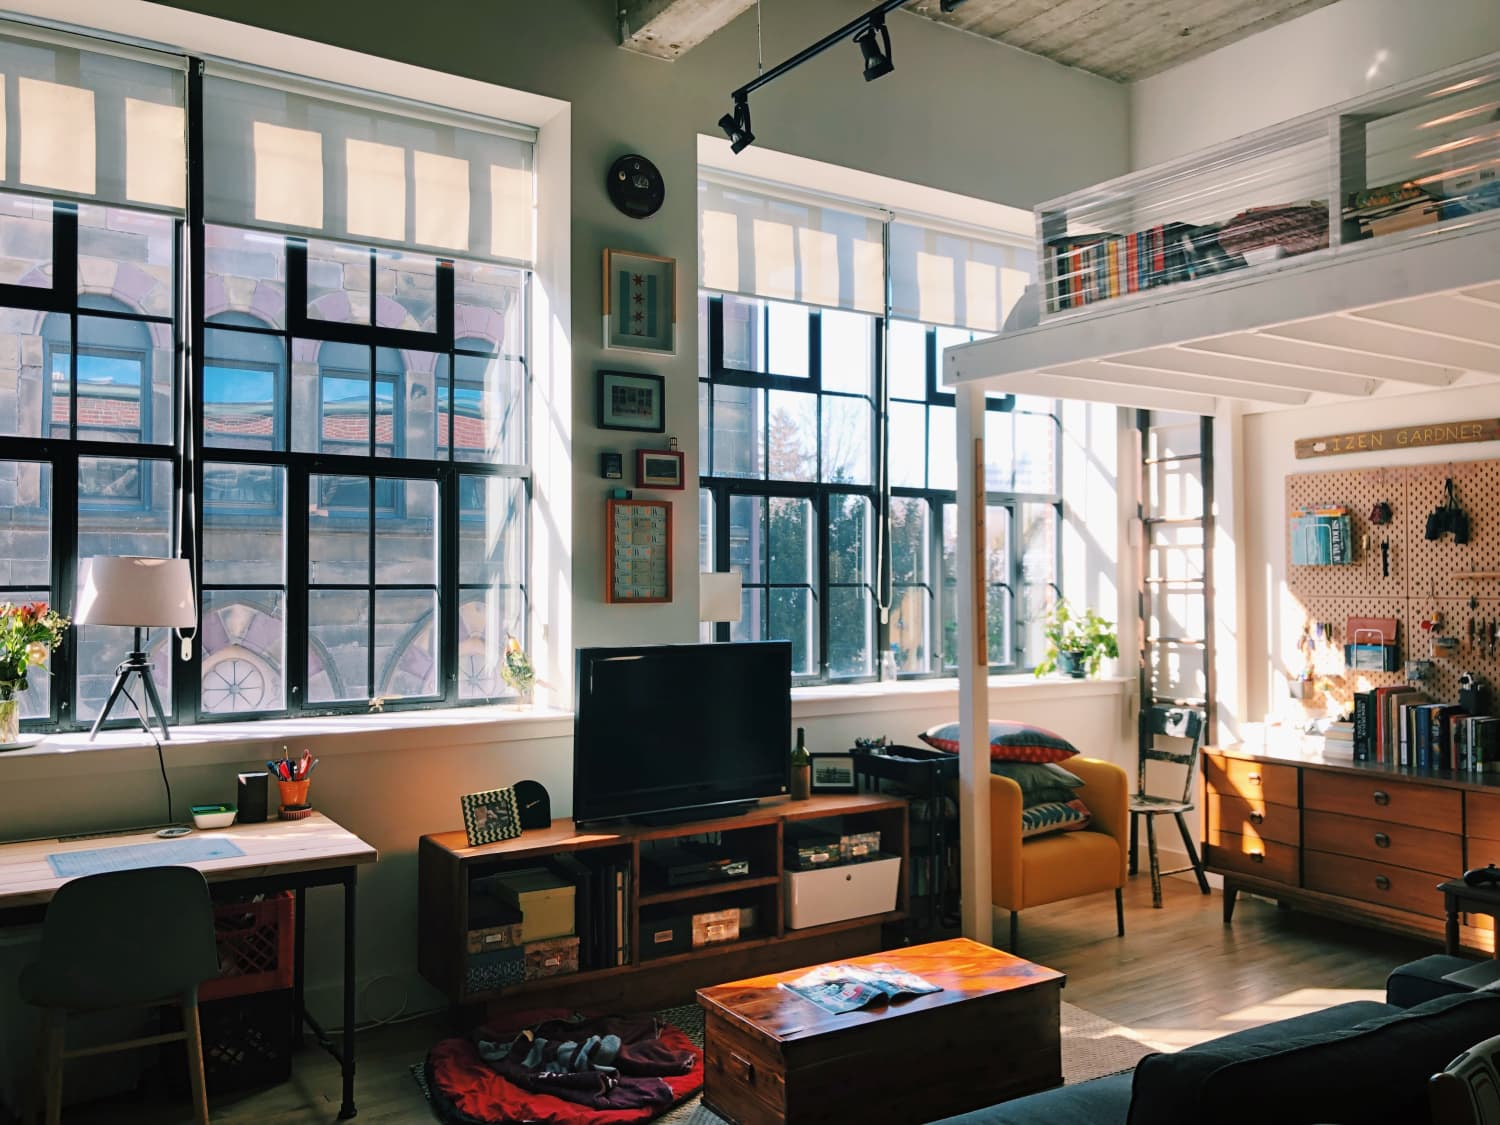 A Small Boston Studio Apartment Has One of the Best DIY ...